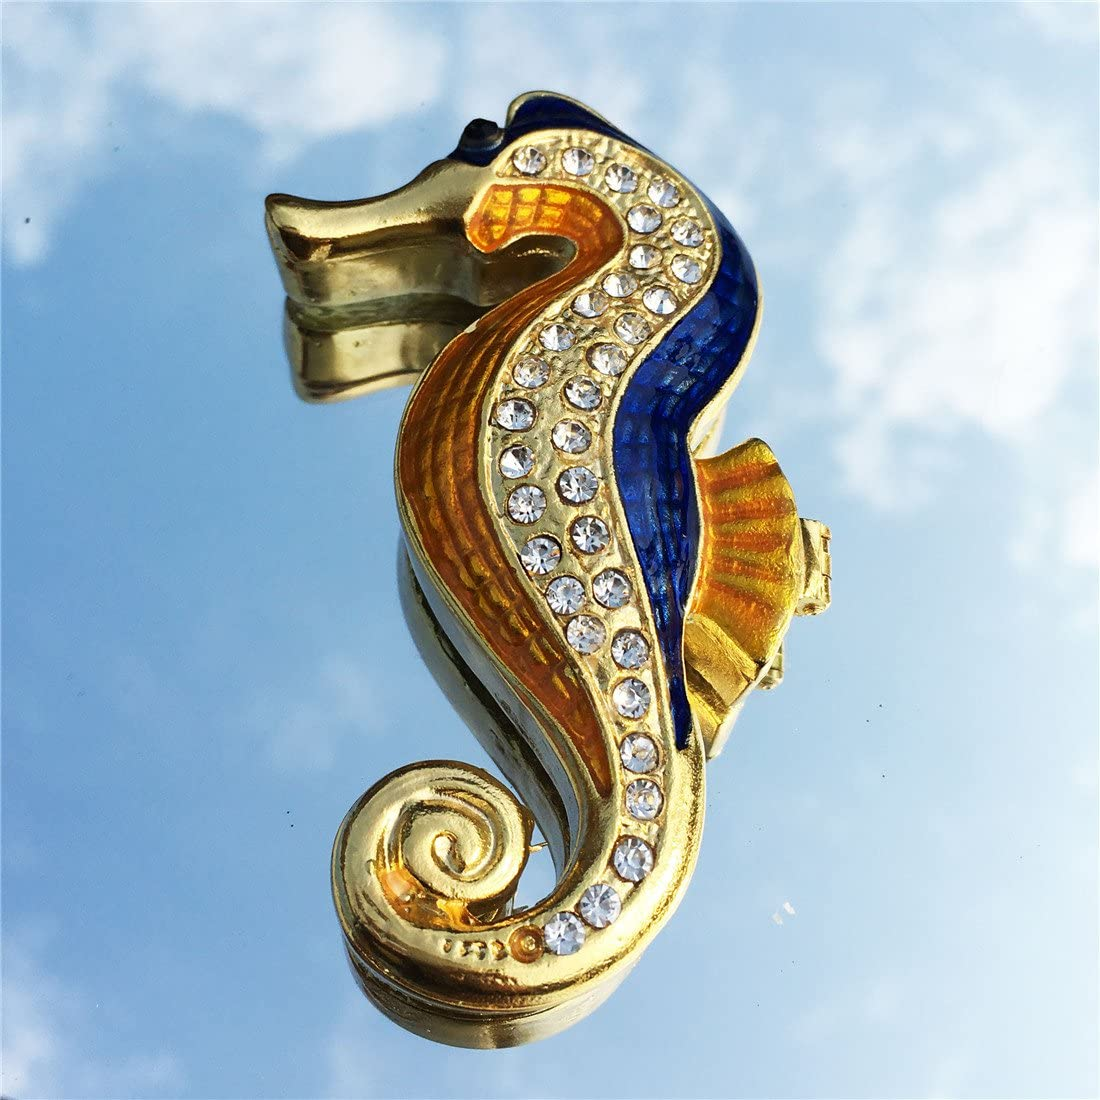 Waltz/&F Golden Hippocampus Trinket Box Hinged Hand-Painted Figurine Collectible Ring Holder with Gift Box